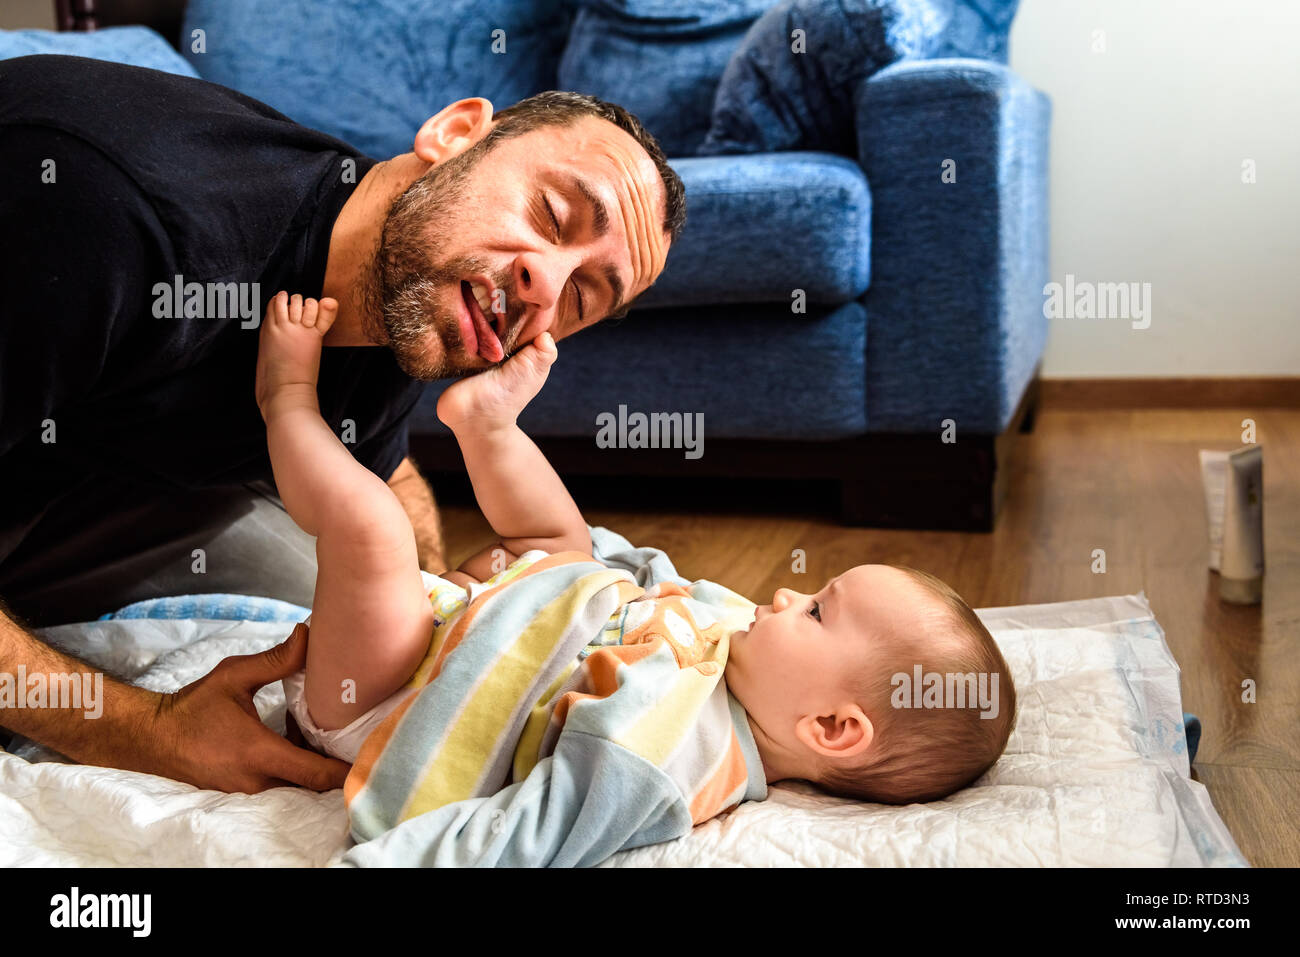 Dad struggling with his baby daughter to change dirty diapers putting faces of effort, concept of fatherhood. - Stock Image